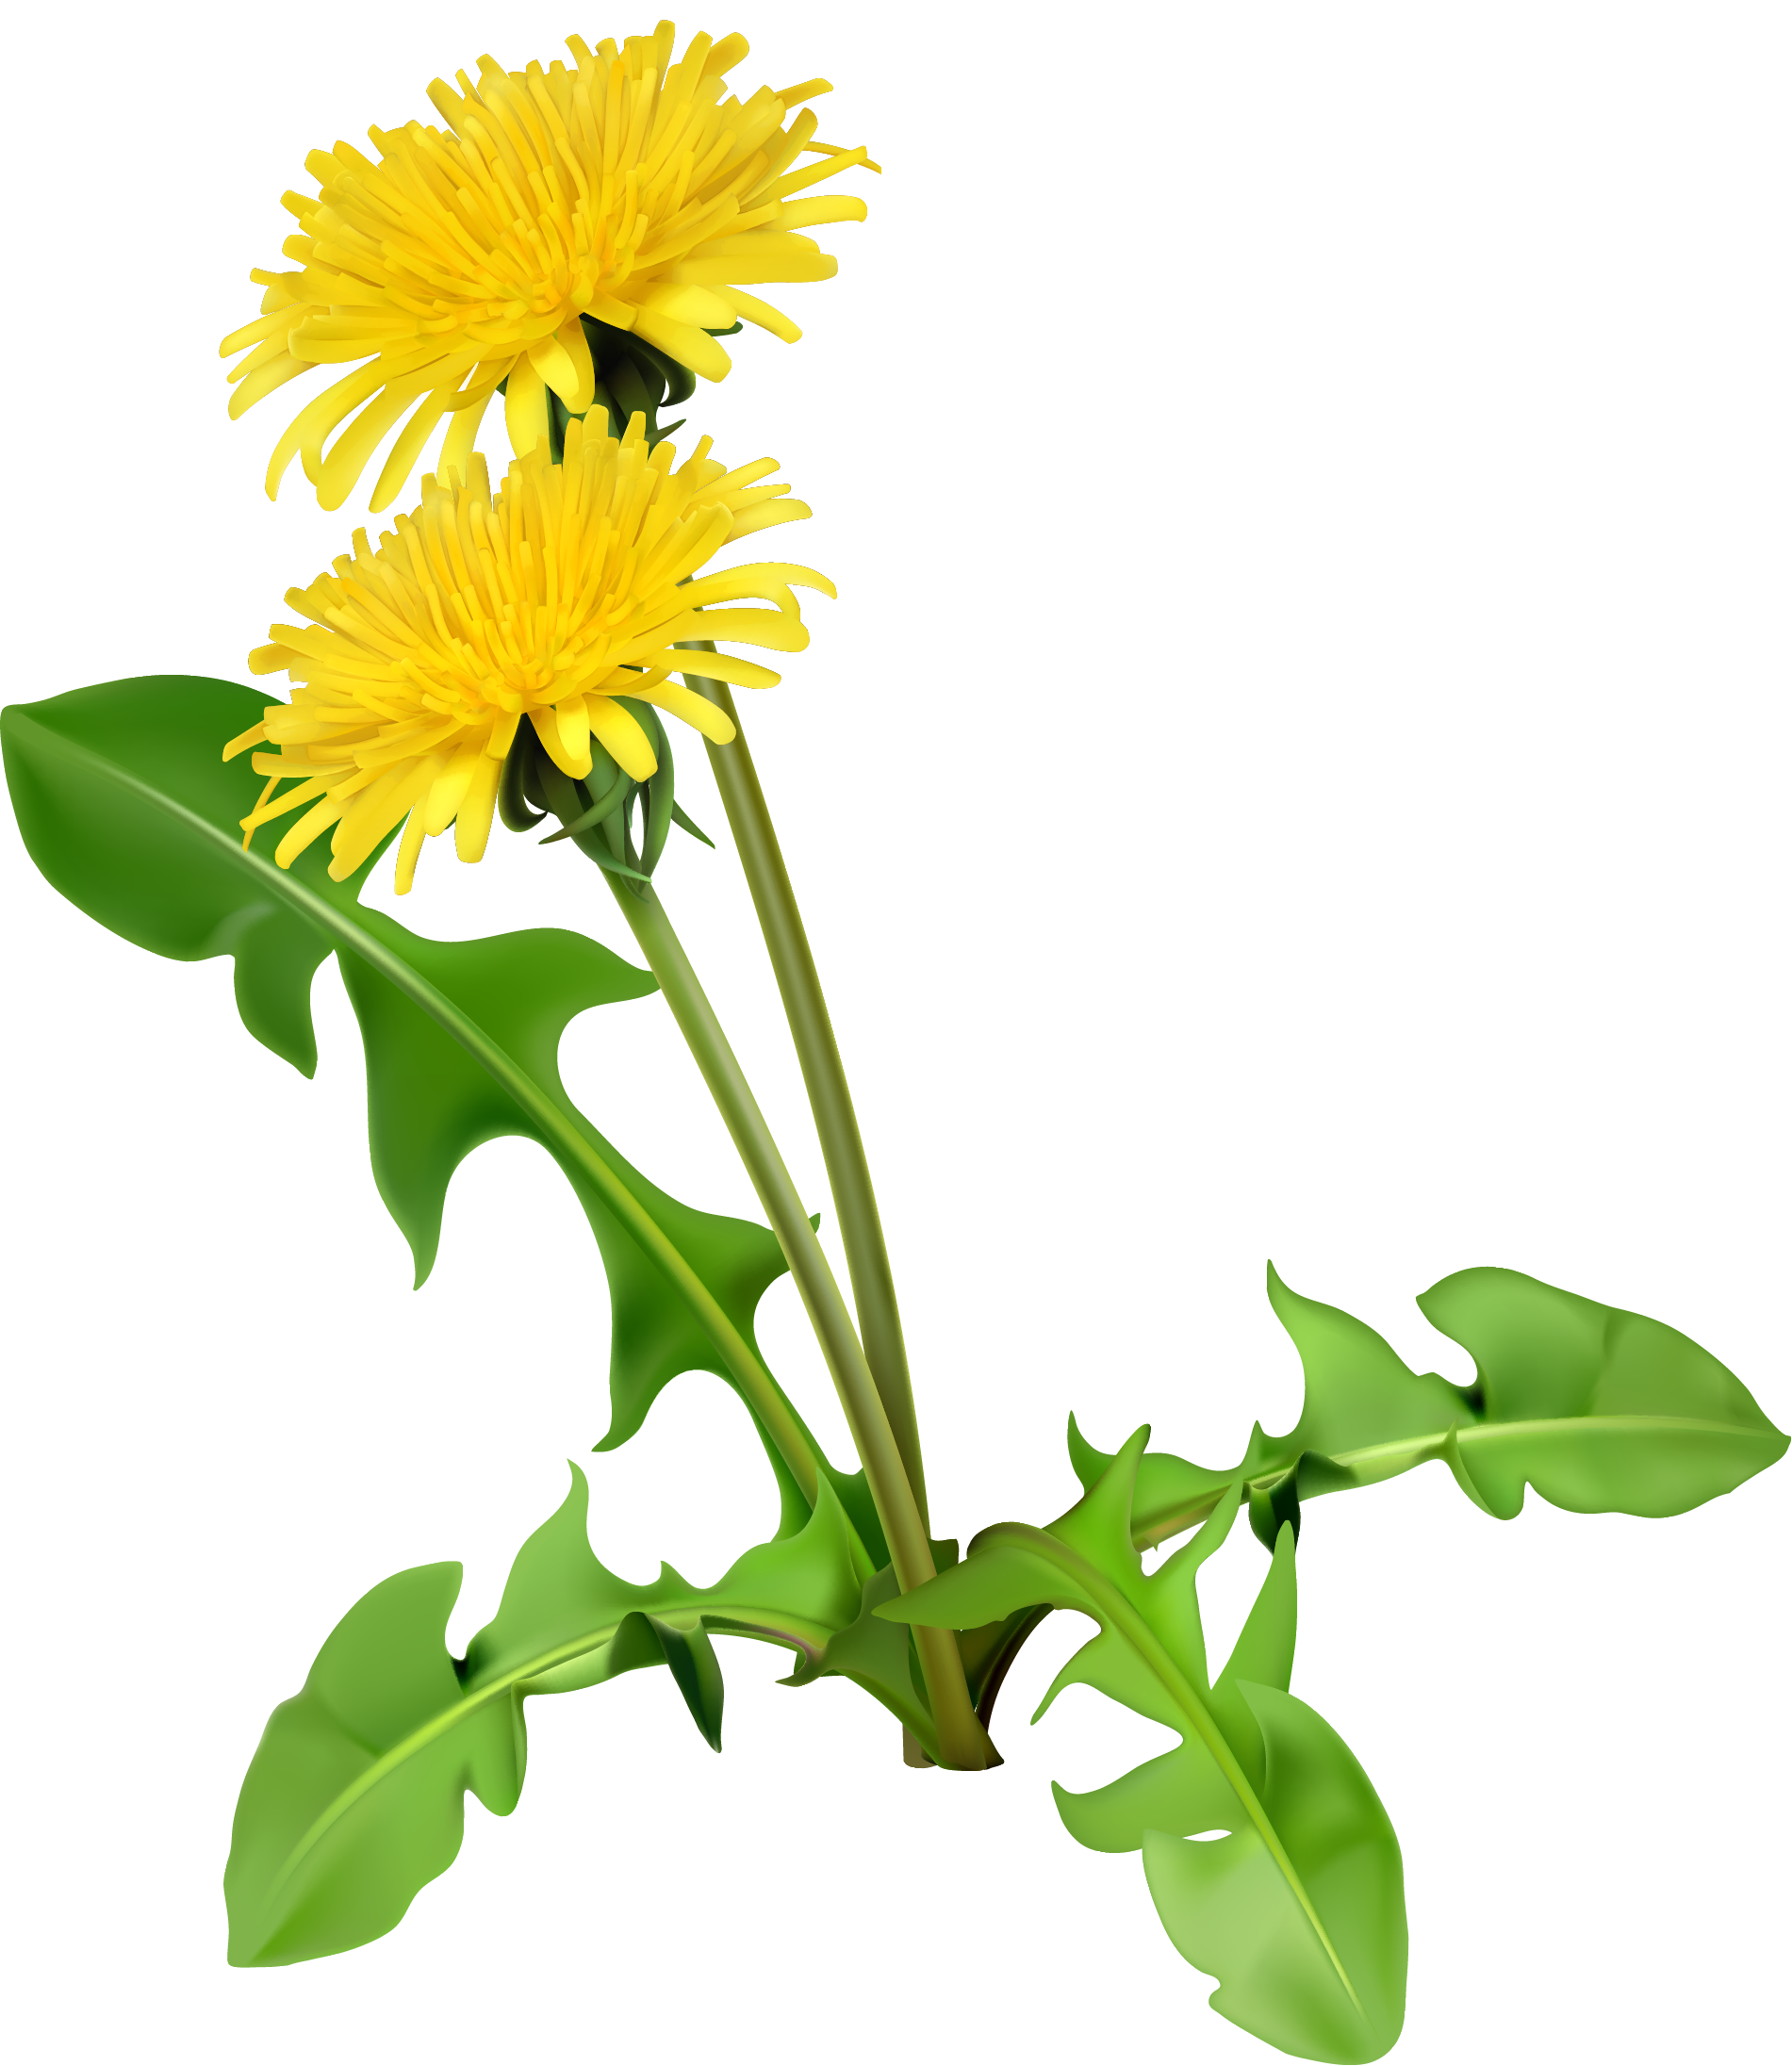 Dandelion flower clipart free library Common Dandelion Dandelion coffee Flower Seed - Cartoon yellow ... free library